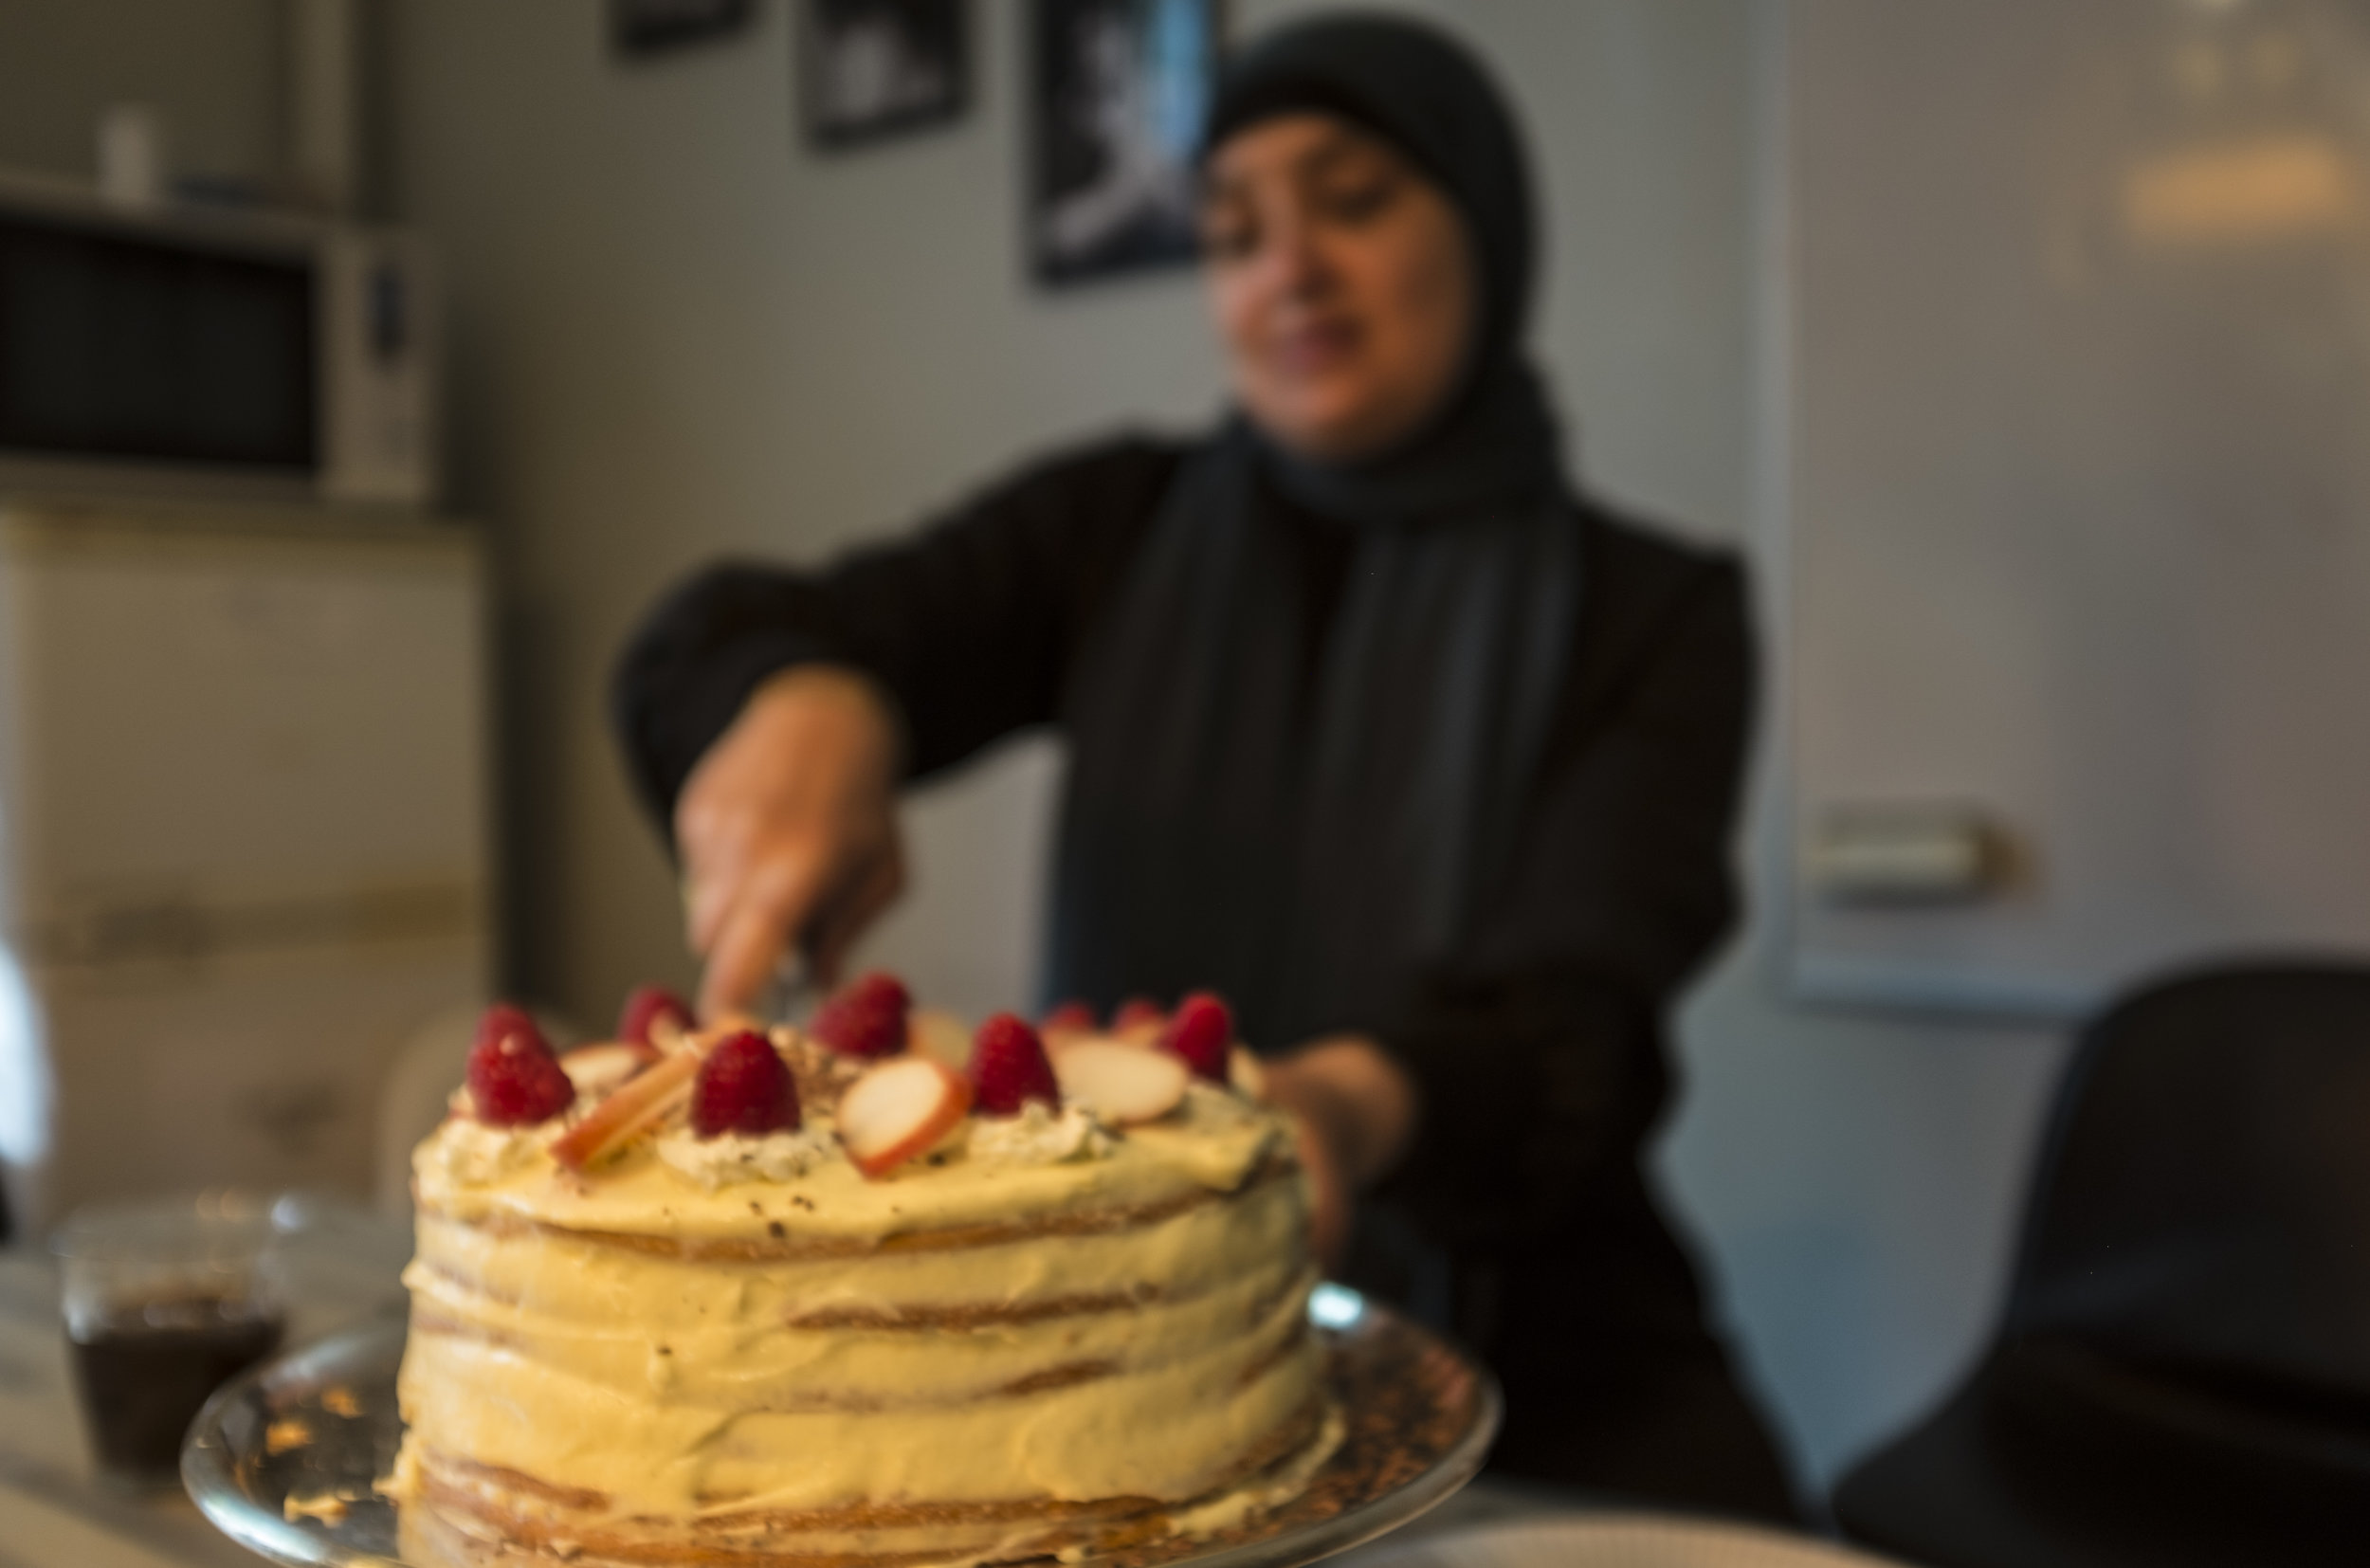 Najat, who has always loved to bake, has made a cake for her internship in Trampoline House. Photo: Sofia Stærmose Hardt.